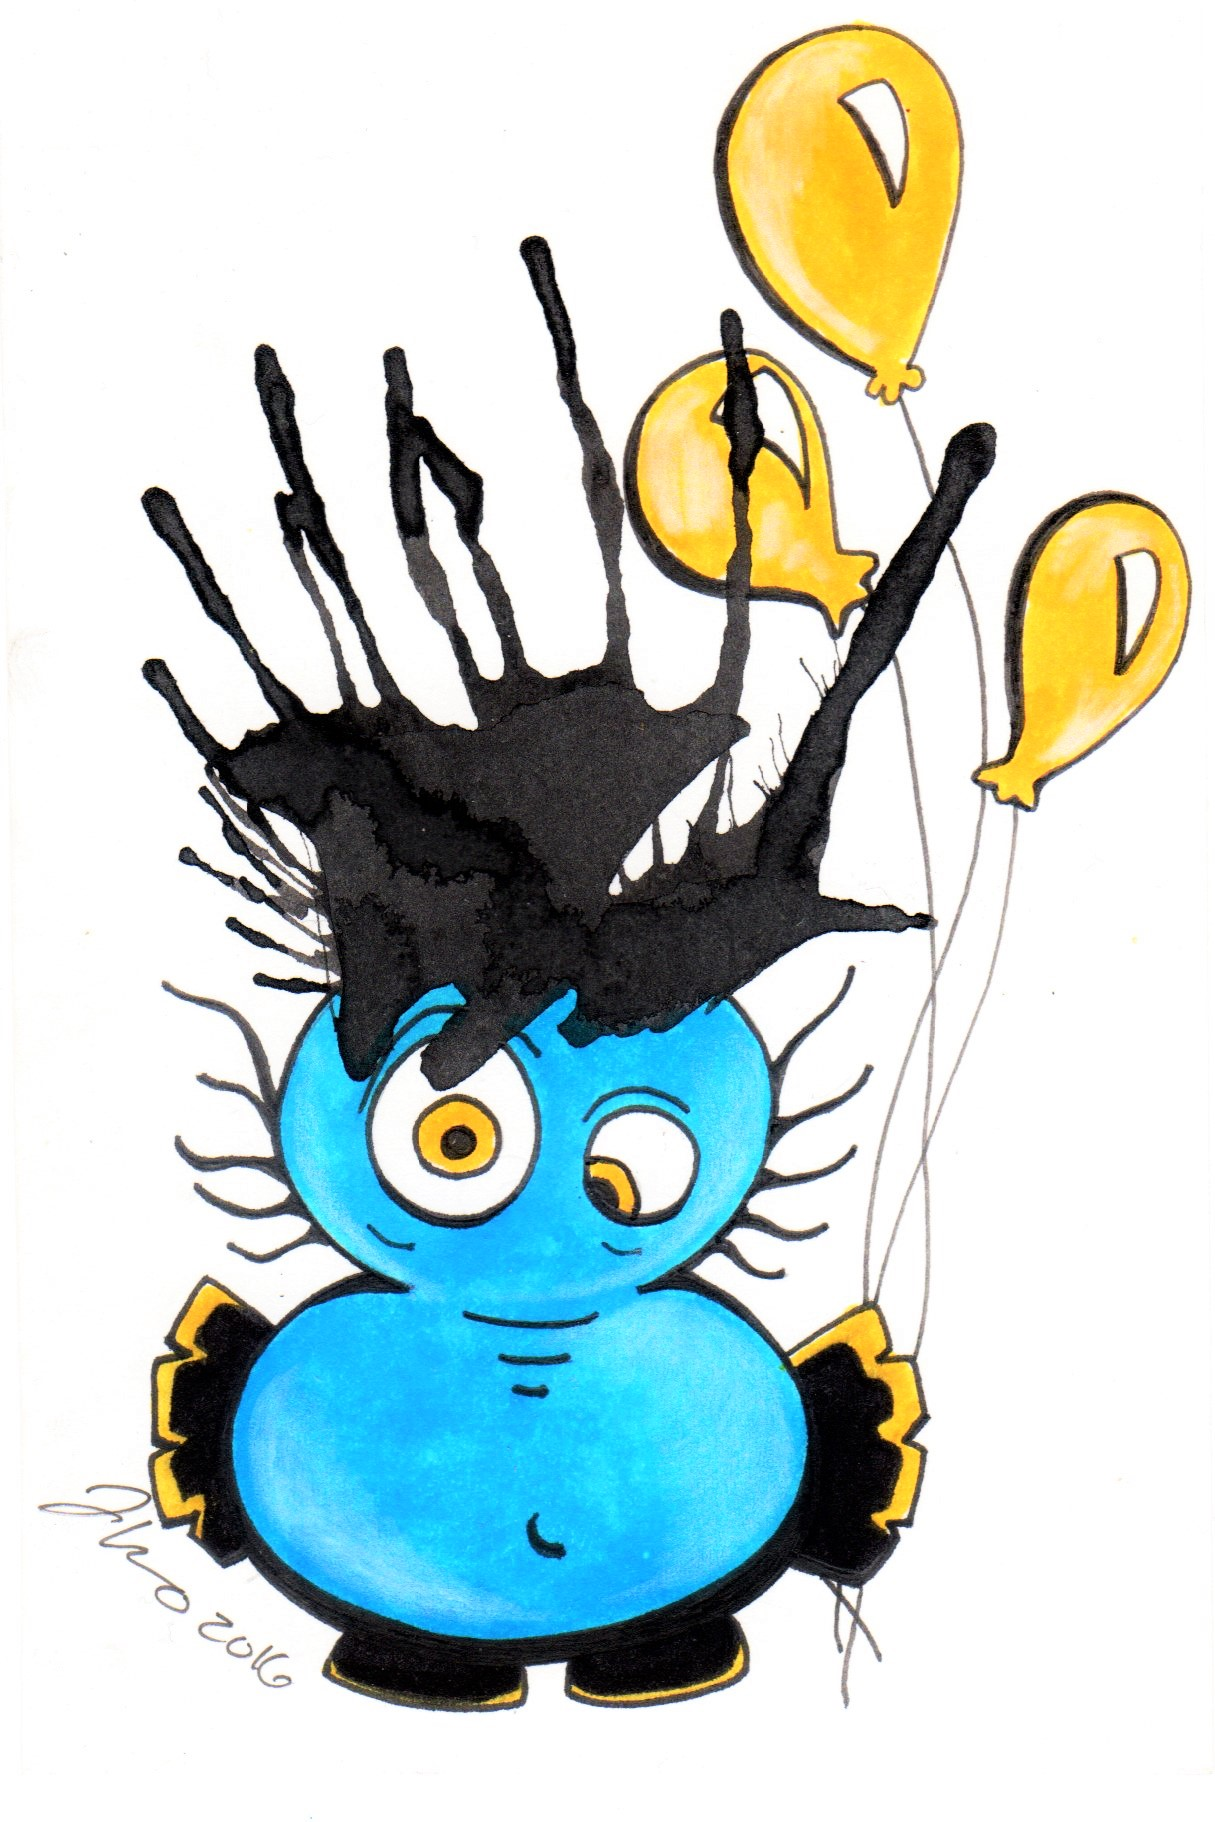 Ink Blot Monster #2